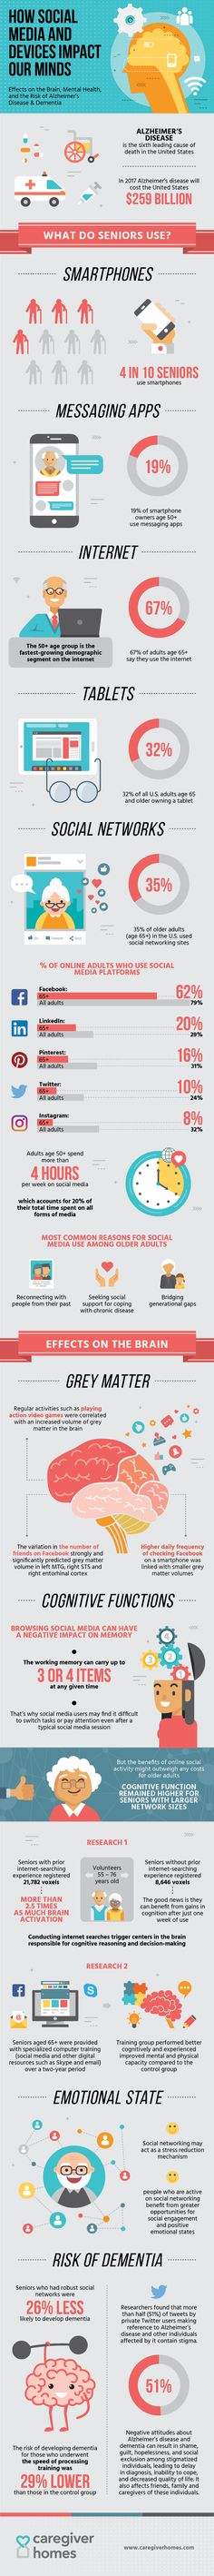 How Social Media & Devices Impact Our Minds: Effects on the Brain, Mental Health, and the Risk of Alzheimer's Disease & Dementia. #infographics #SocialMedia #facebook #Devices #Mind #Brain #MentalHealth #Health #Alzheimer #Disease #Dementia #Seniors #oldpeople #internet #computers #smartphones #research #statistics #stats #data #laptop #braintraining #socialnetworks #tablets #app #greymatter #cognitive #cognitivefunctions #memory #